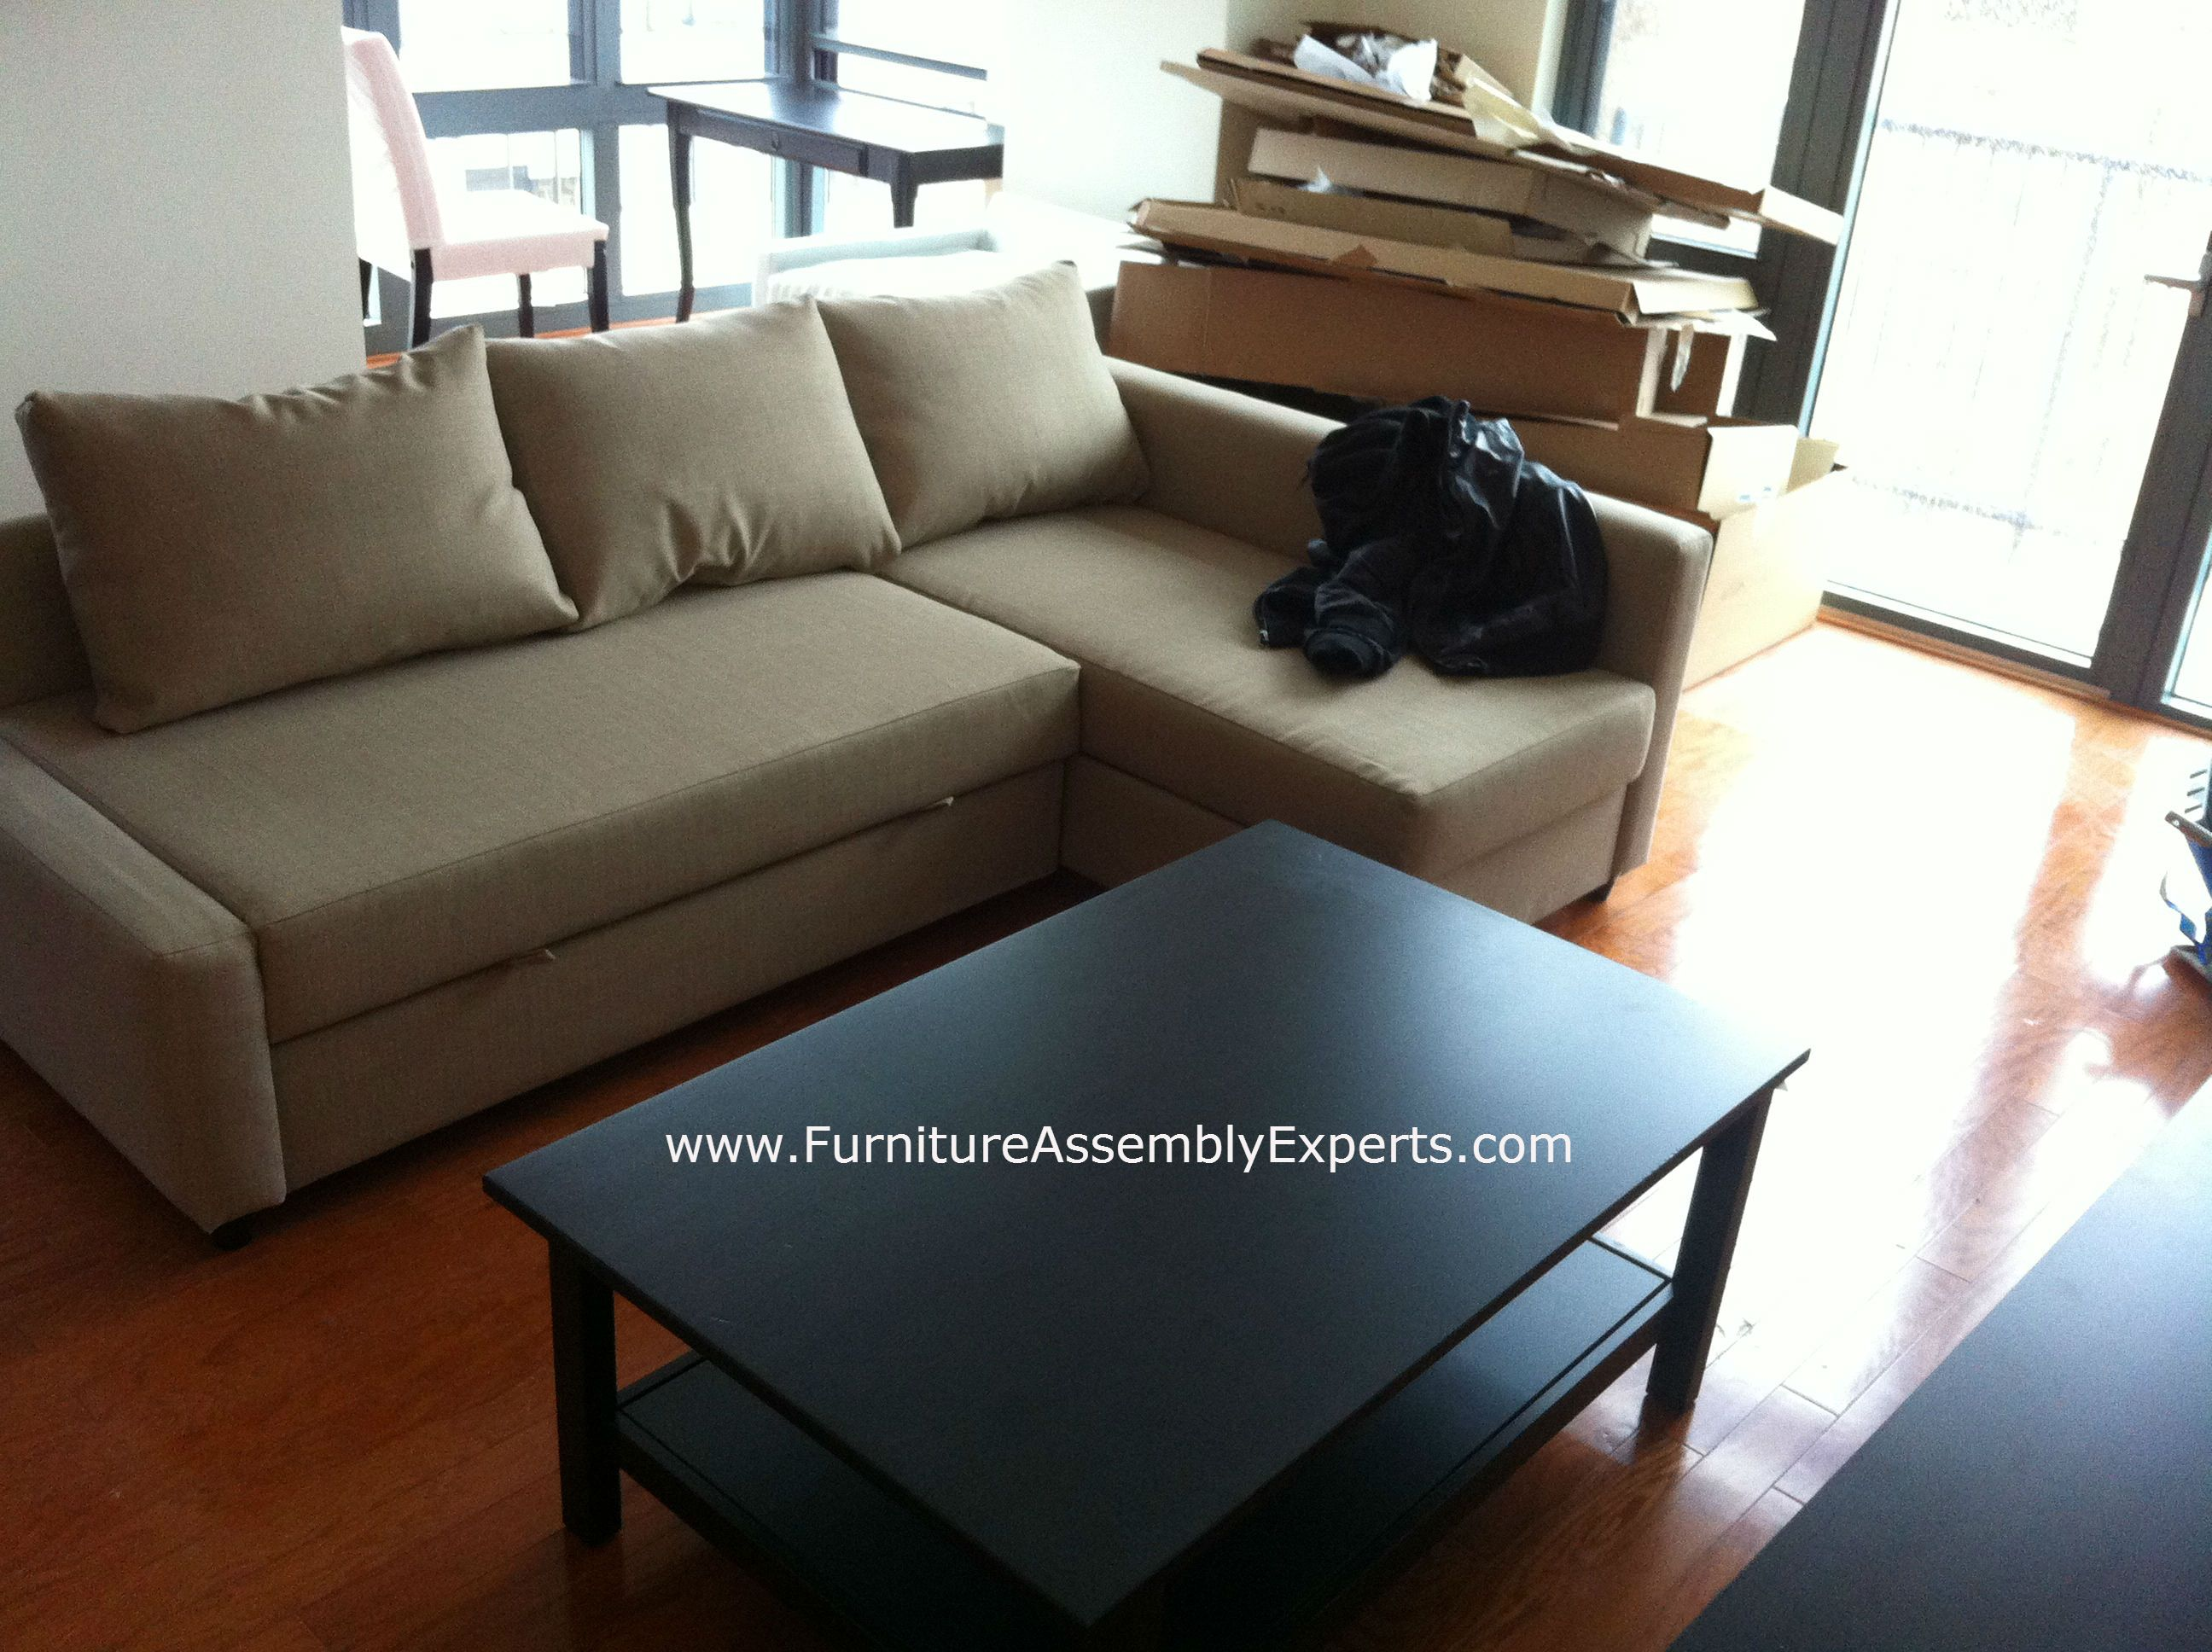 Sofa bed with storage ikea - Ikea Sectional Sofa Bed With Storage Unit Assembled In Assembled In Baltimore Md By Furniture Assembly